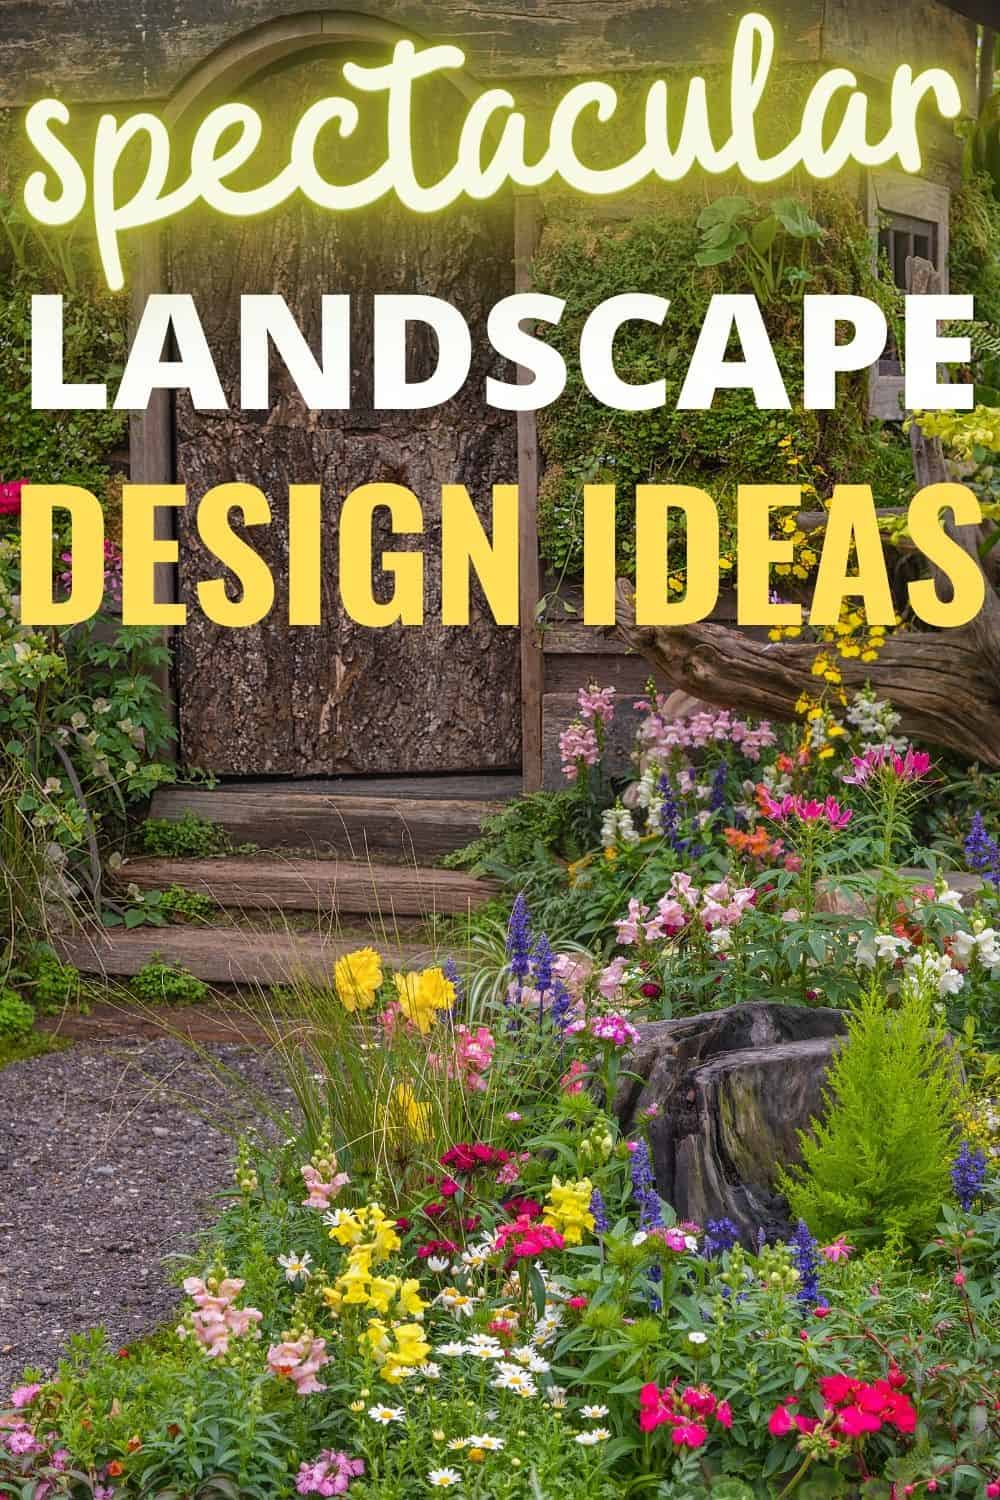 Spectacular landscape design ideas